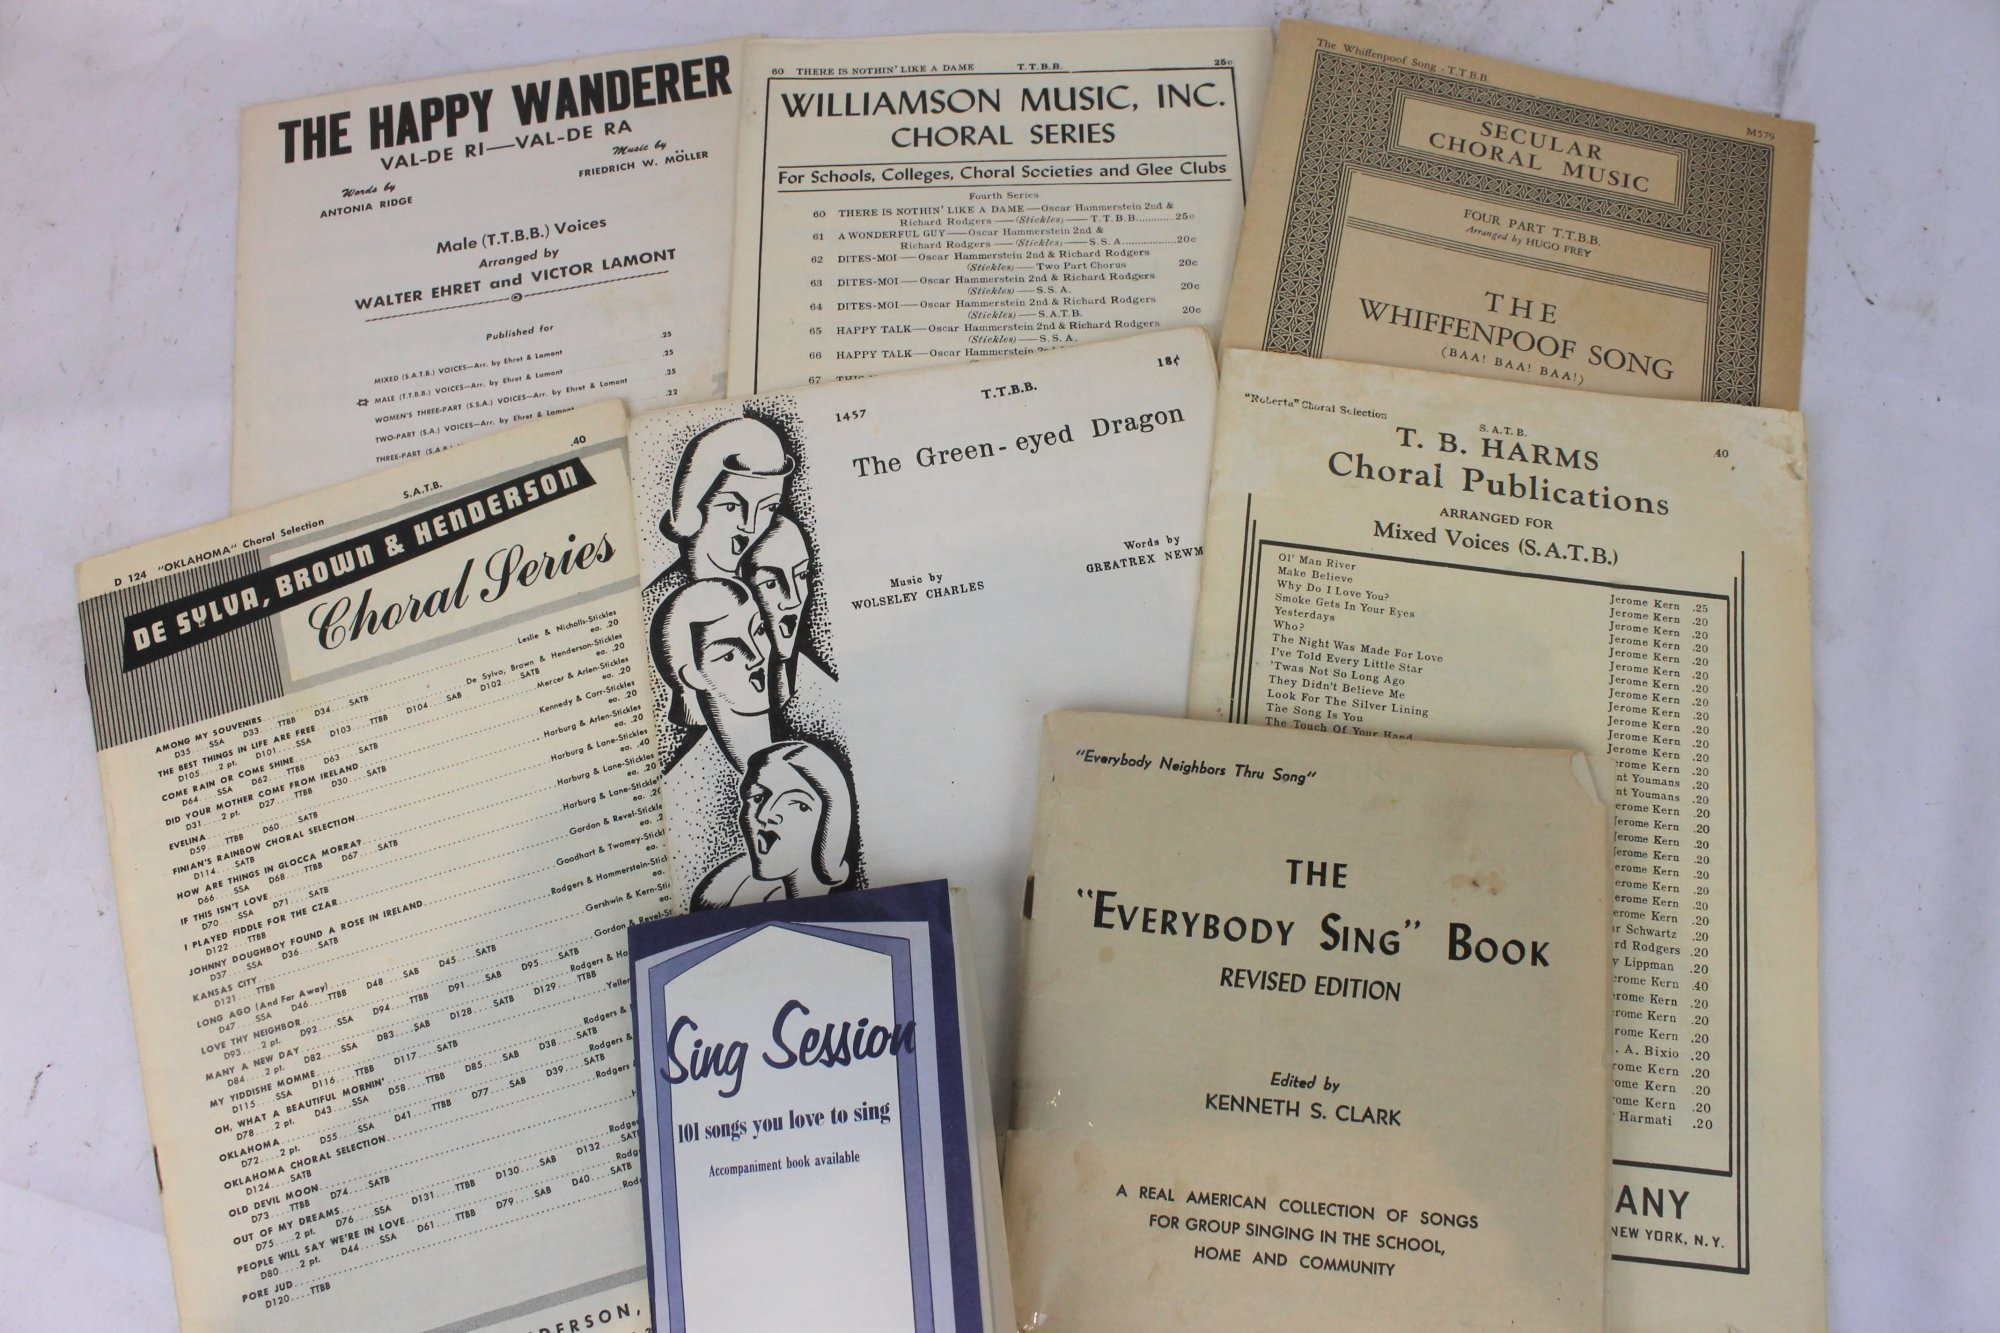 Lot of 8 Used Music Books and Sheets - Secular Choral Music